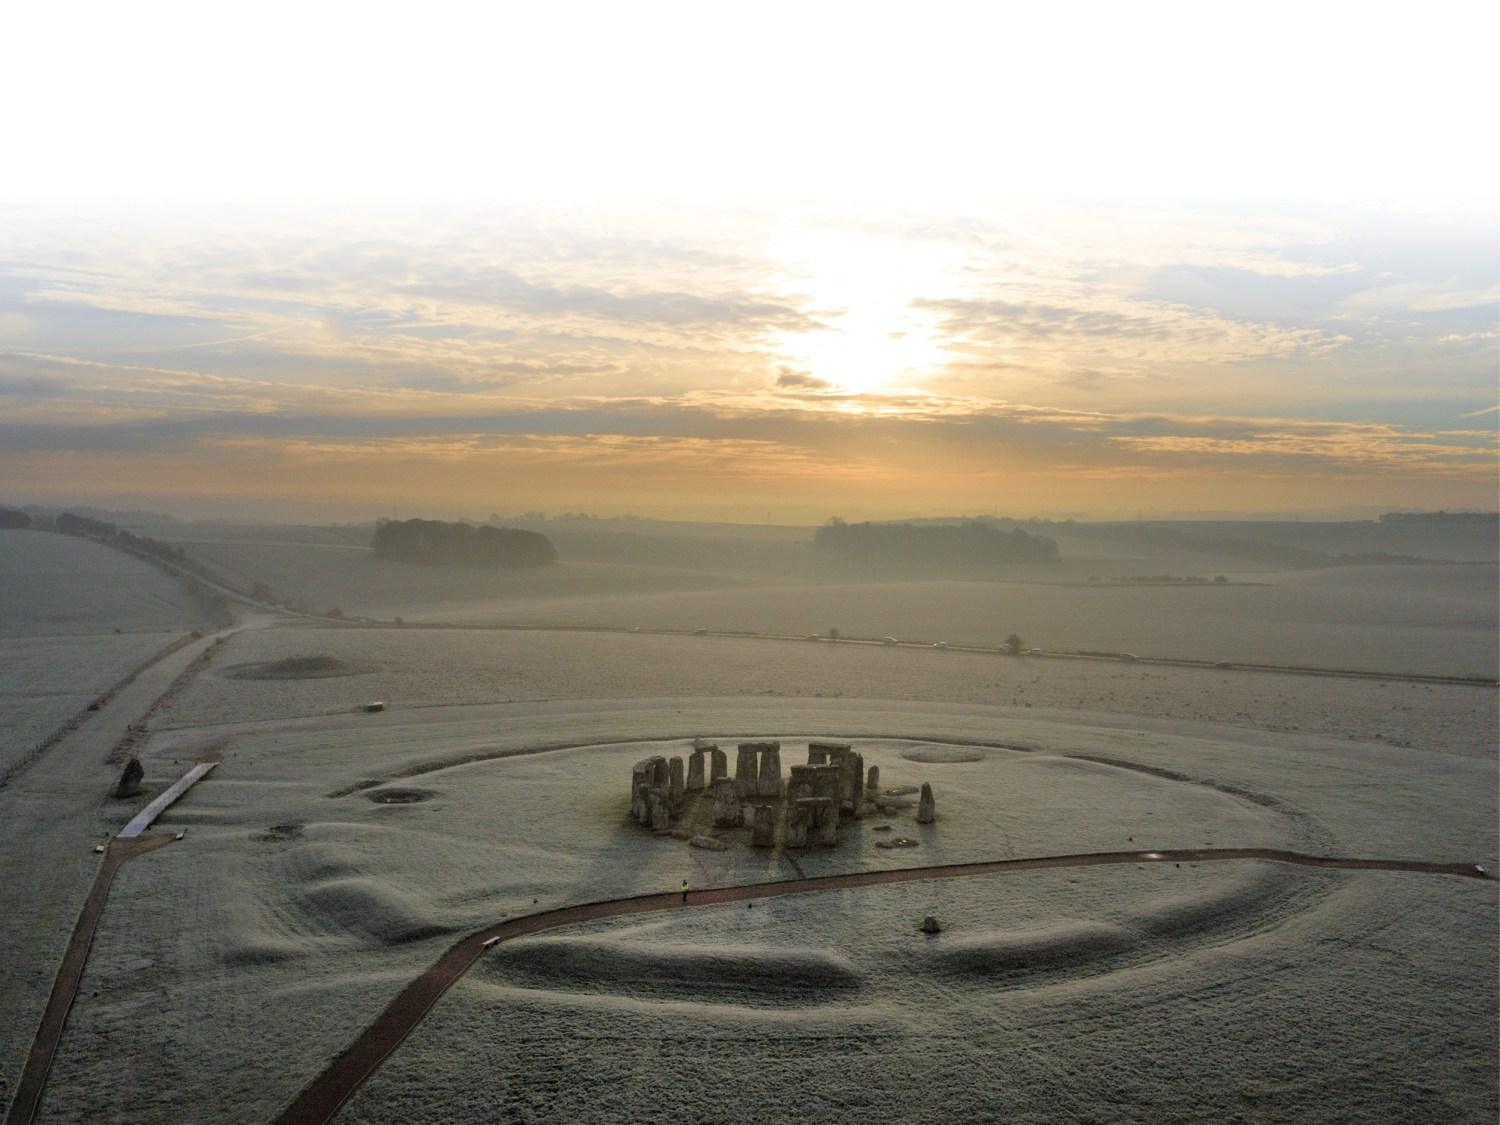 below Feasting evidence from Durrington Walls suggests that the Winter Solstice, not the Summer Solstice, was the main focus of communal celebrations in the area immediately around Stonehenge.